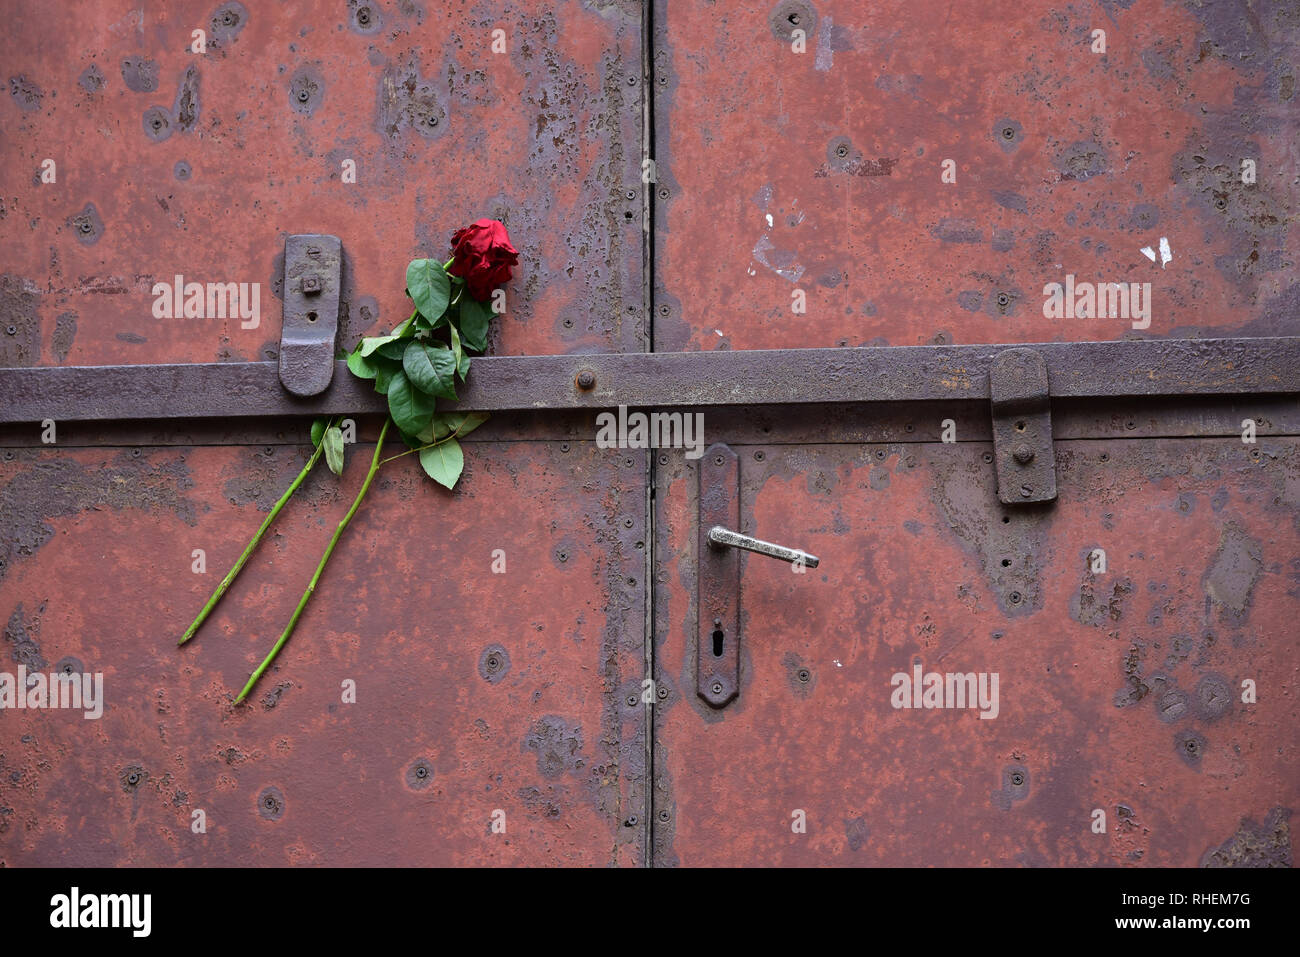 A rose tribute on the doors of 'Block 10', used for prisoner experimentation by German doctors, Auschwitz Concentration Camp, Poland, Europe. - Stock Image